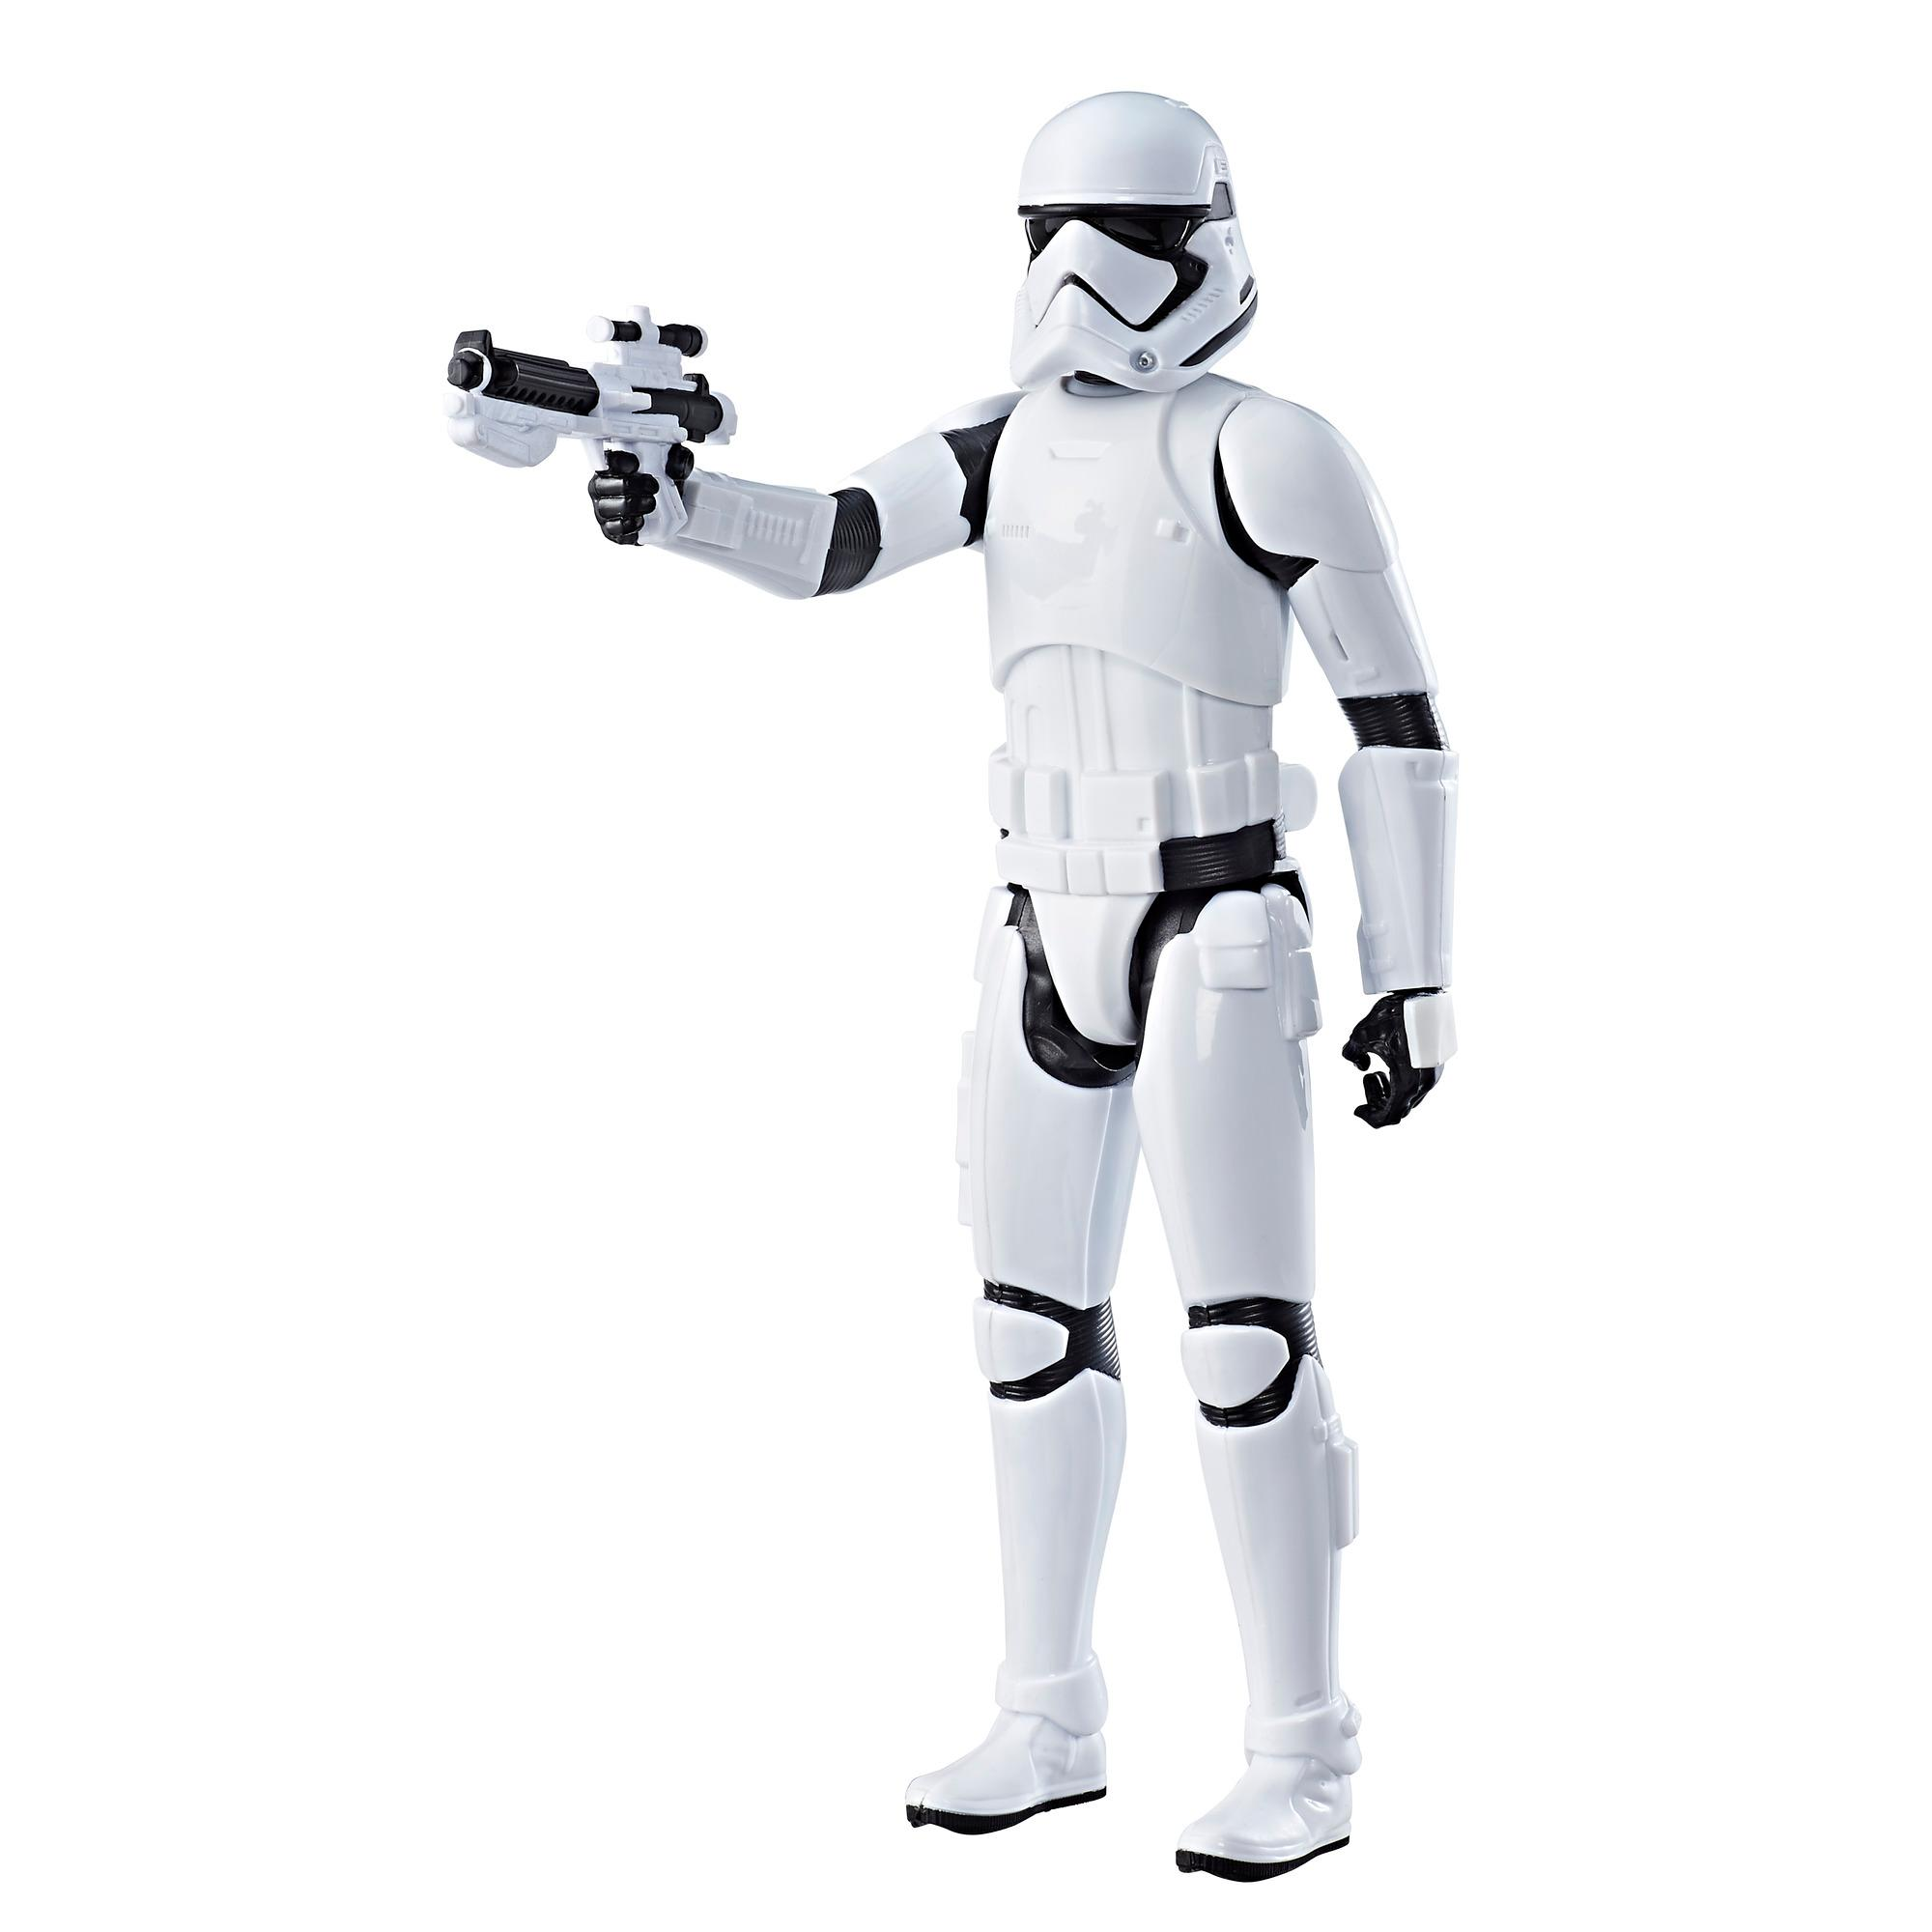 Star Wars: The Last Jedi 12-inch First Order Stormtrooper Figure